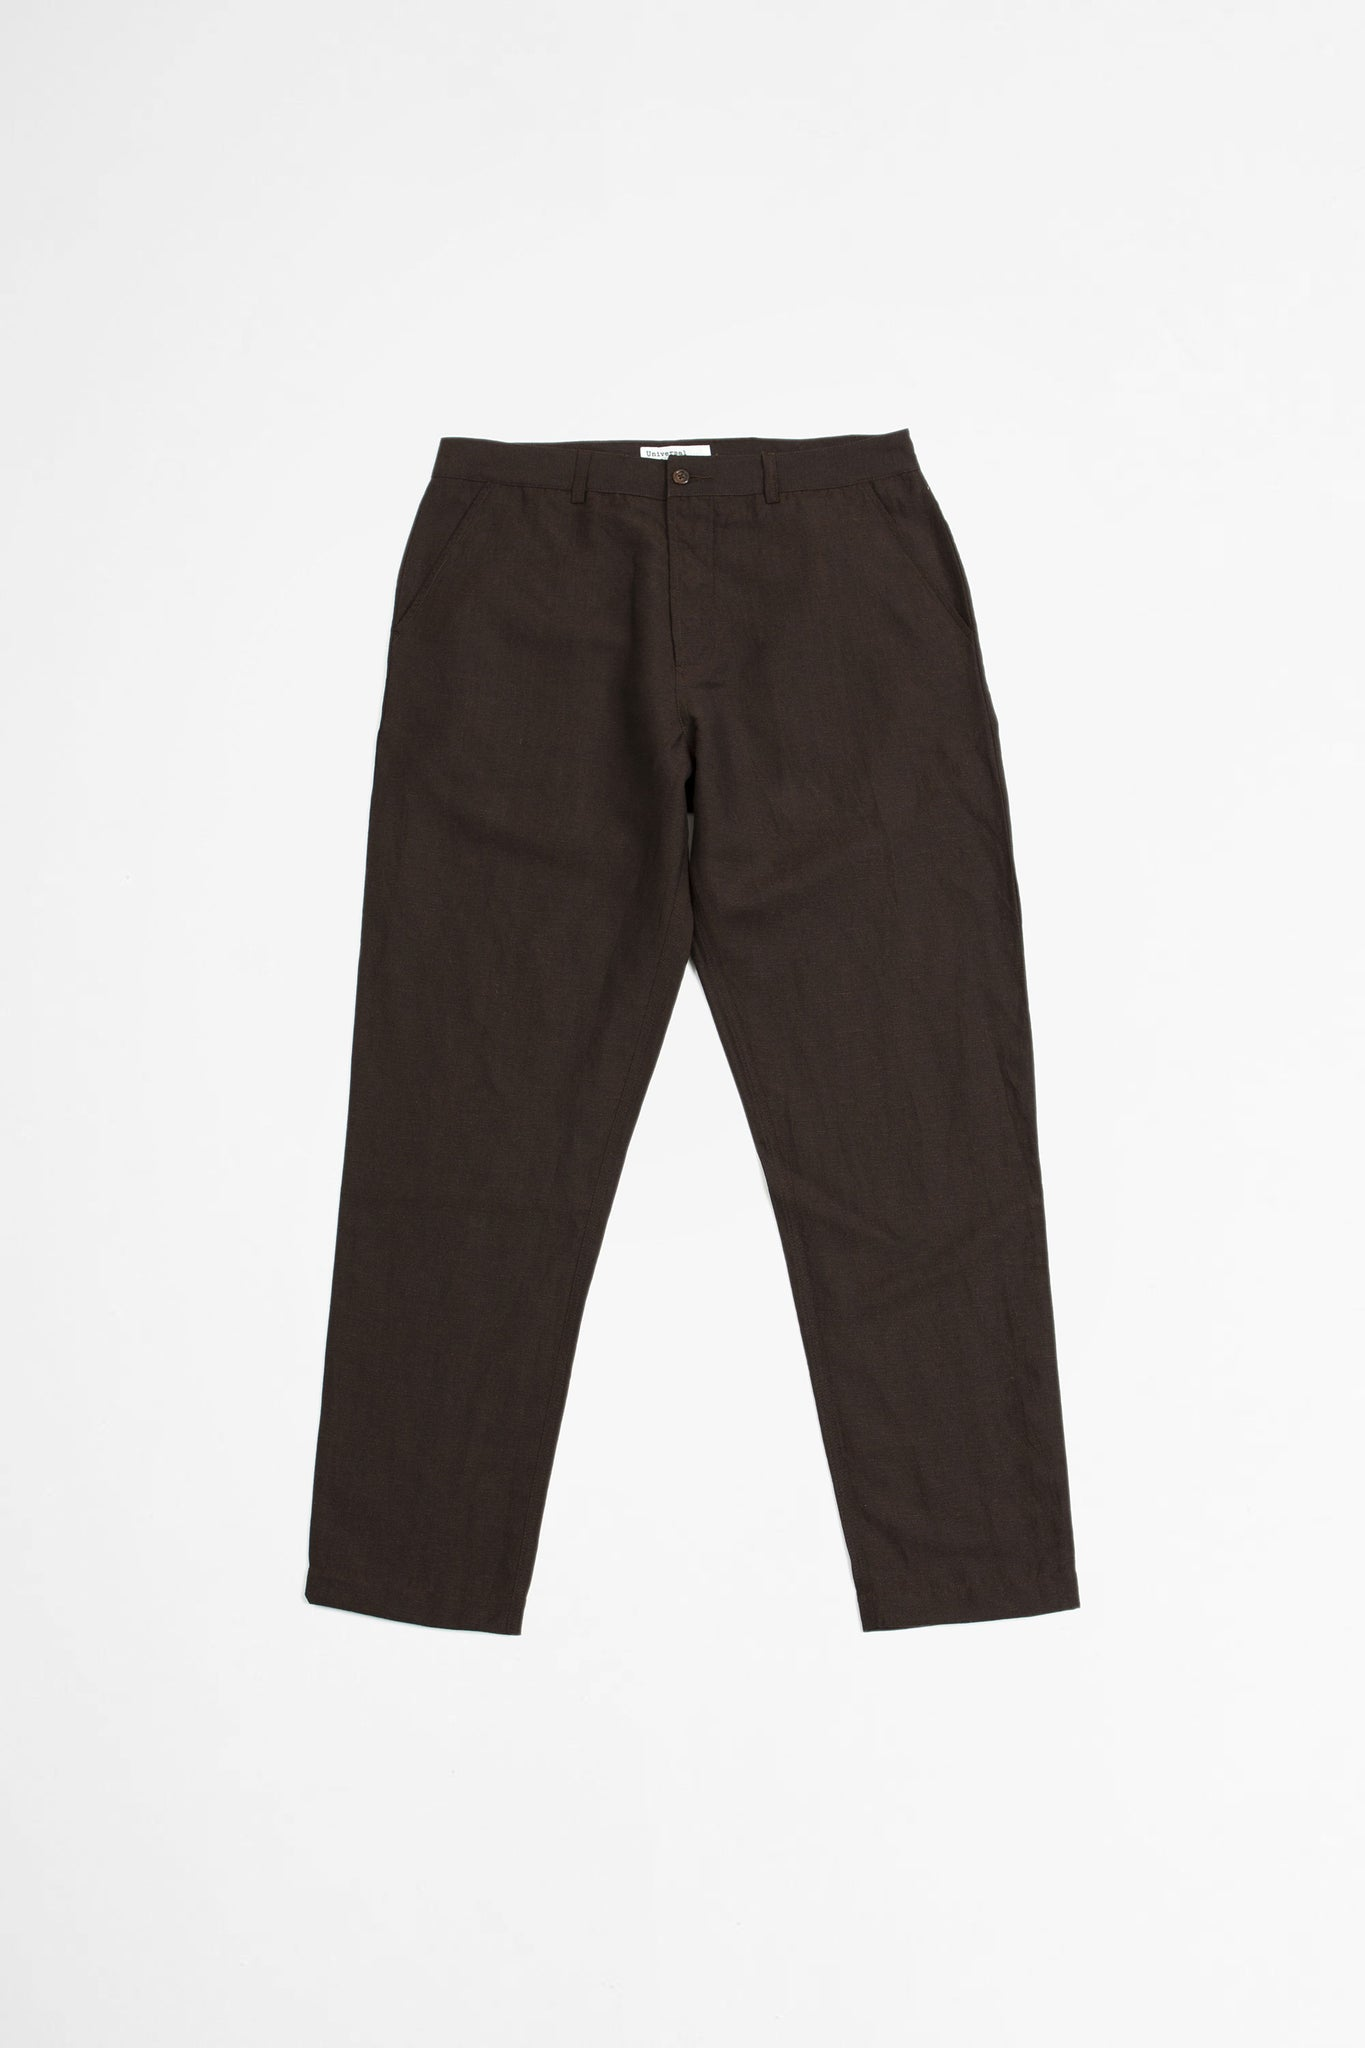 Military chino linen mix suiting brown